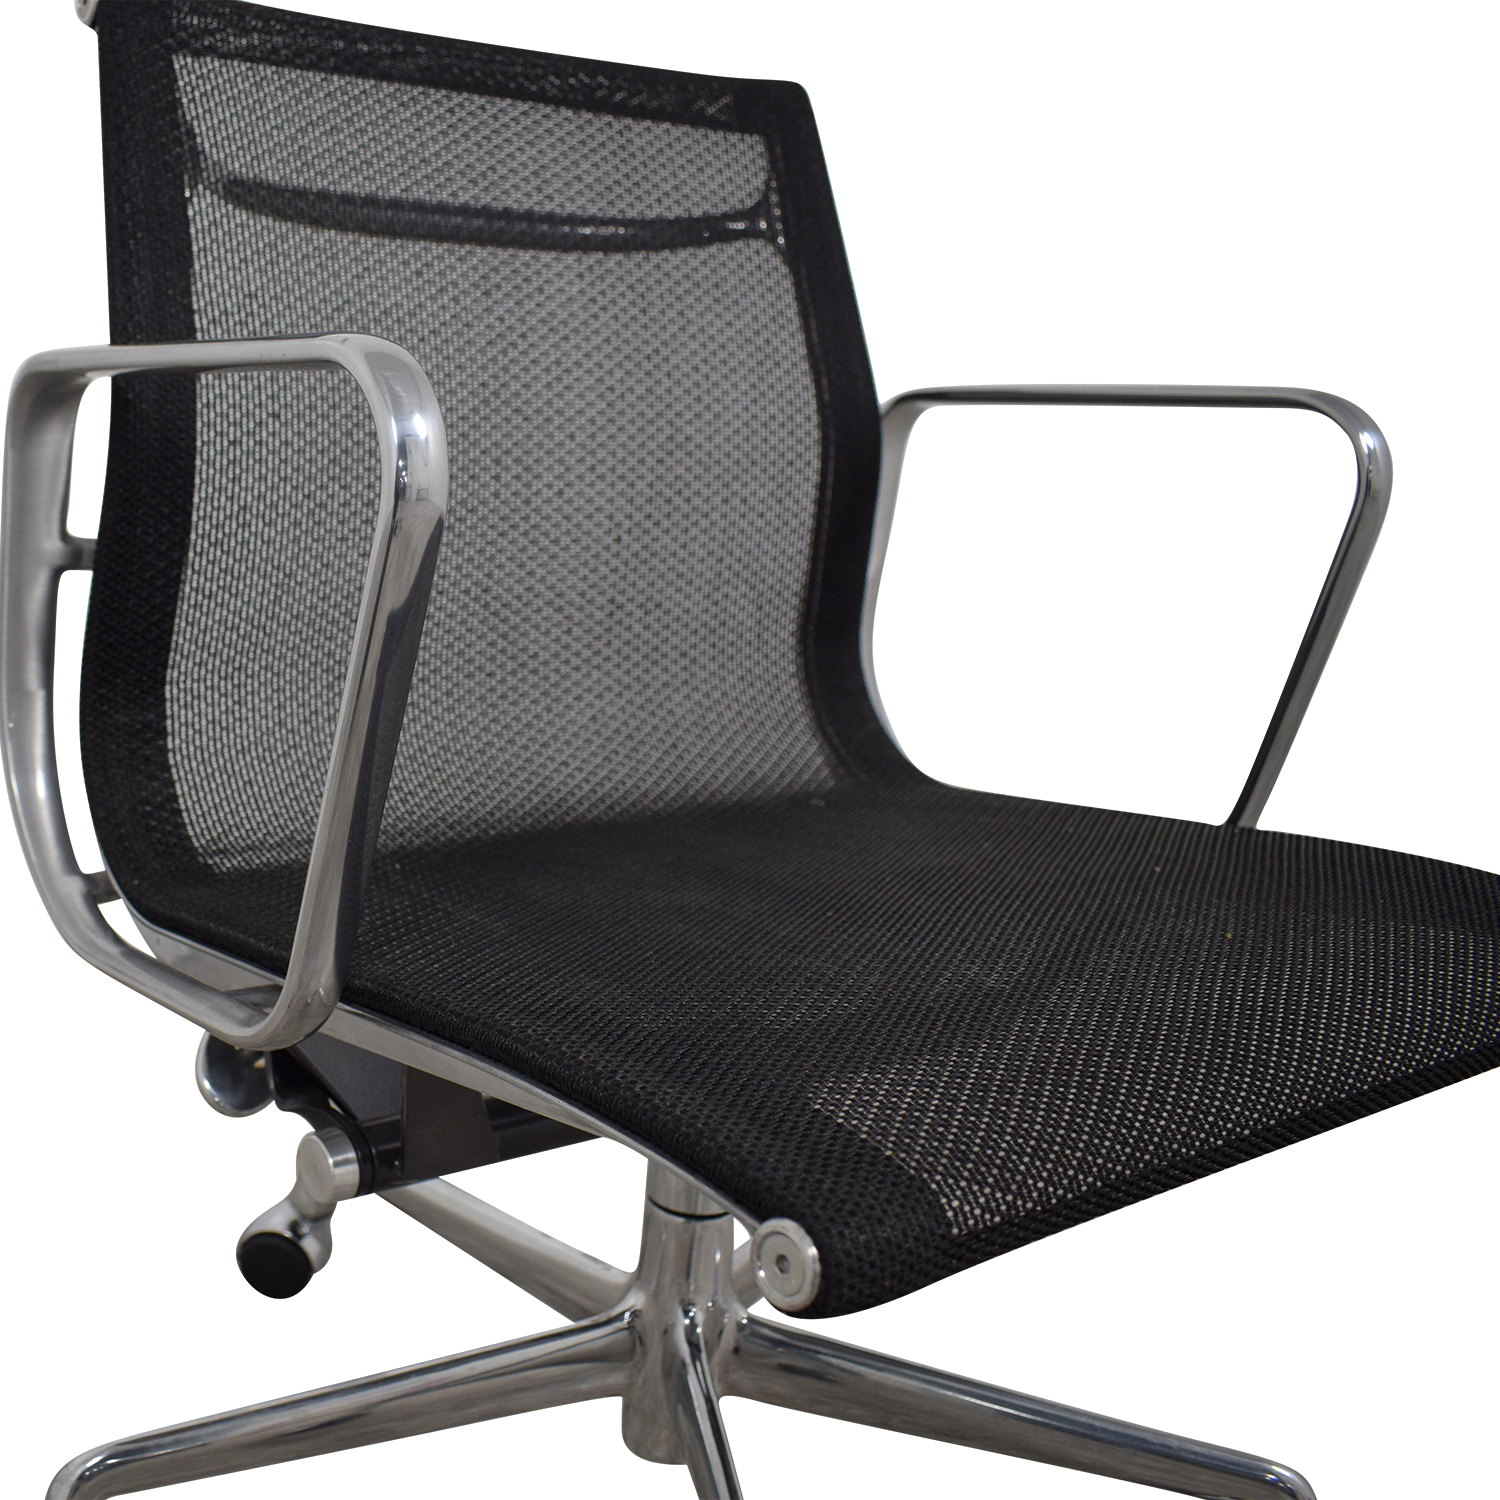 Eames Aluminum Group Eames Aluminum Group Management Mesh Chair on sale